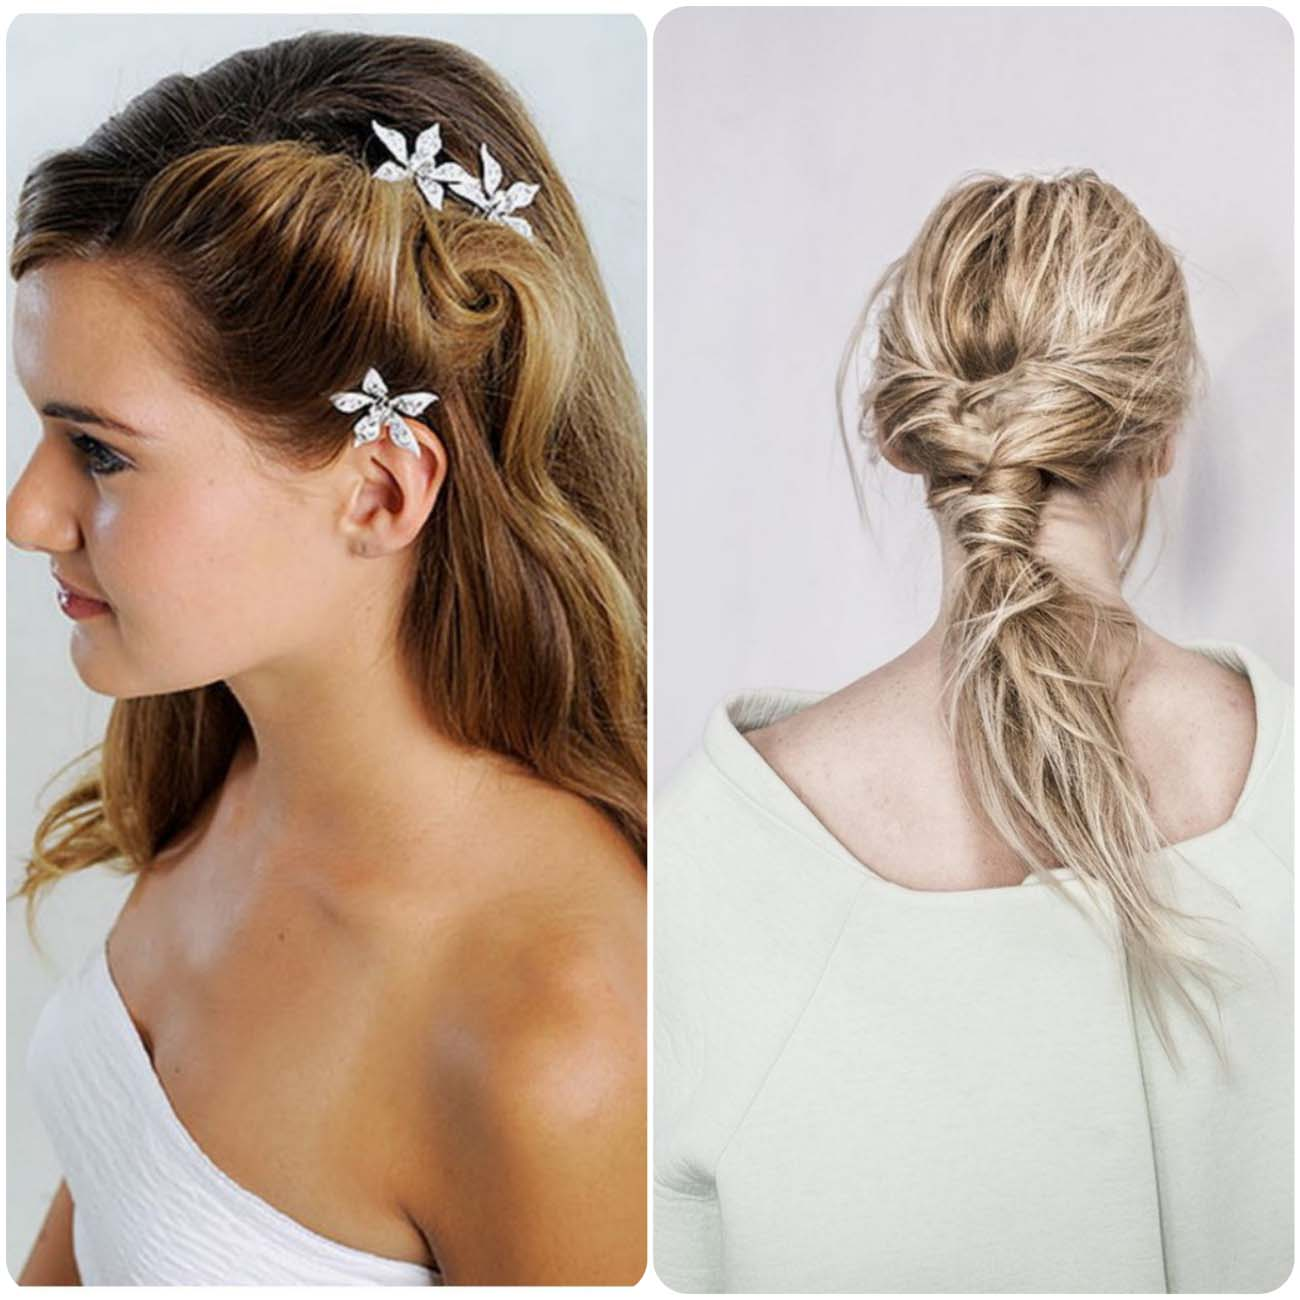 lush-fab-glam_com easy diy hairstyles to get you ready and our the door in less than 5 mins bv26_Fotor_Collage